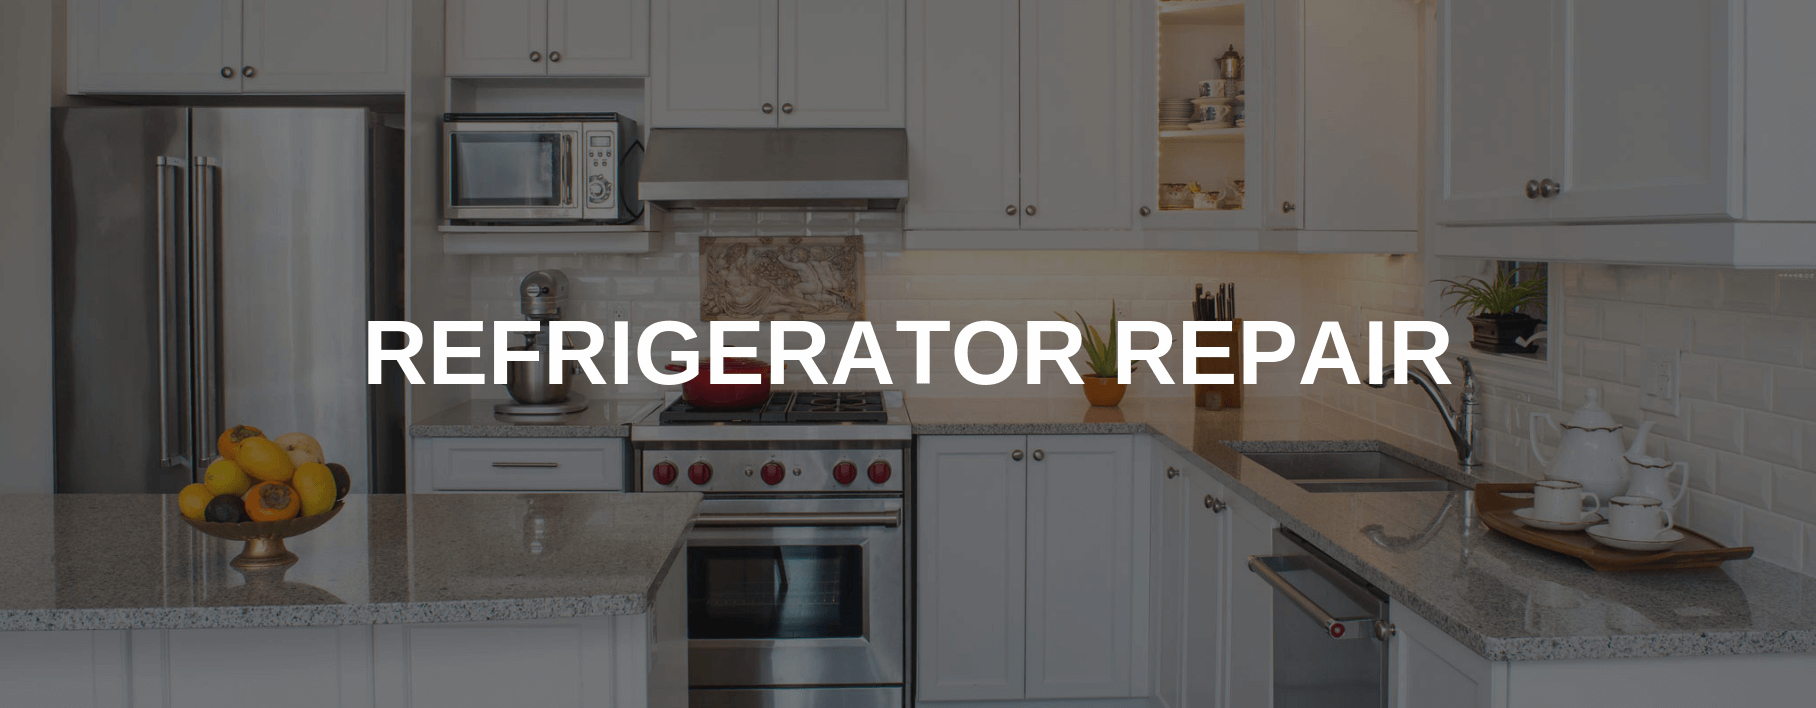 refrigerator repair huntington beach